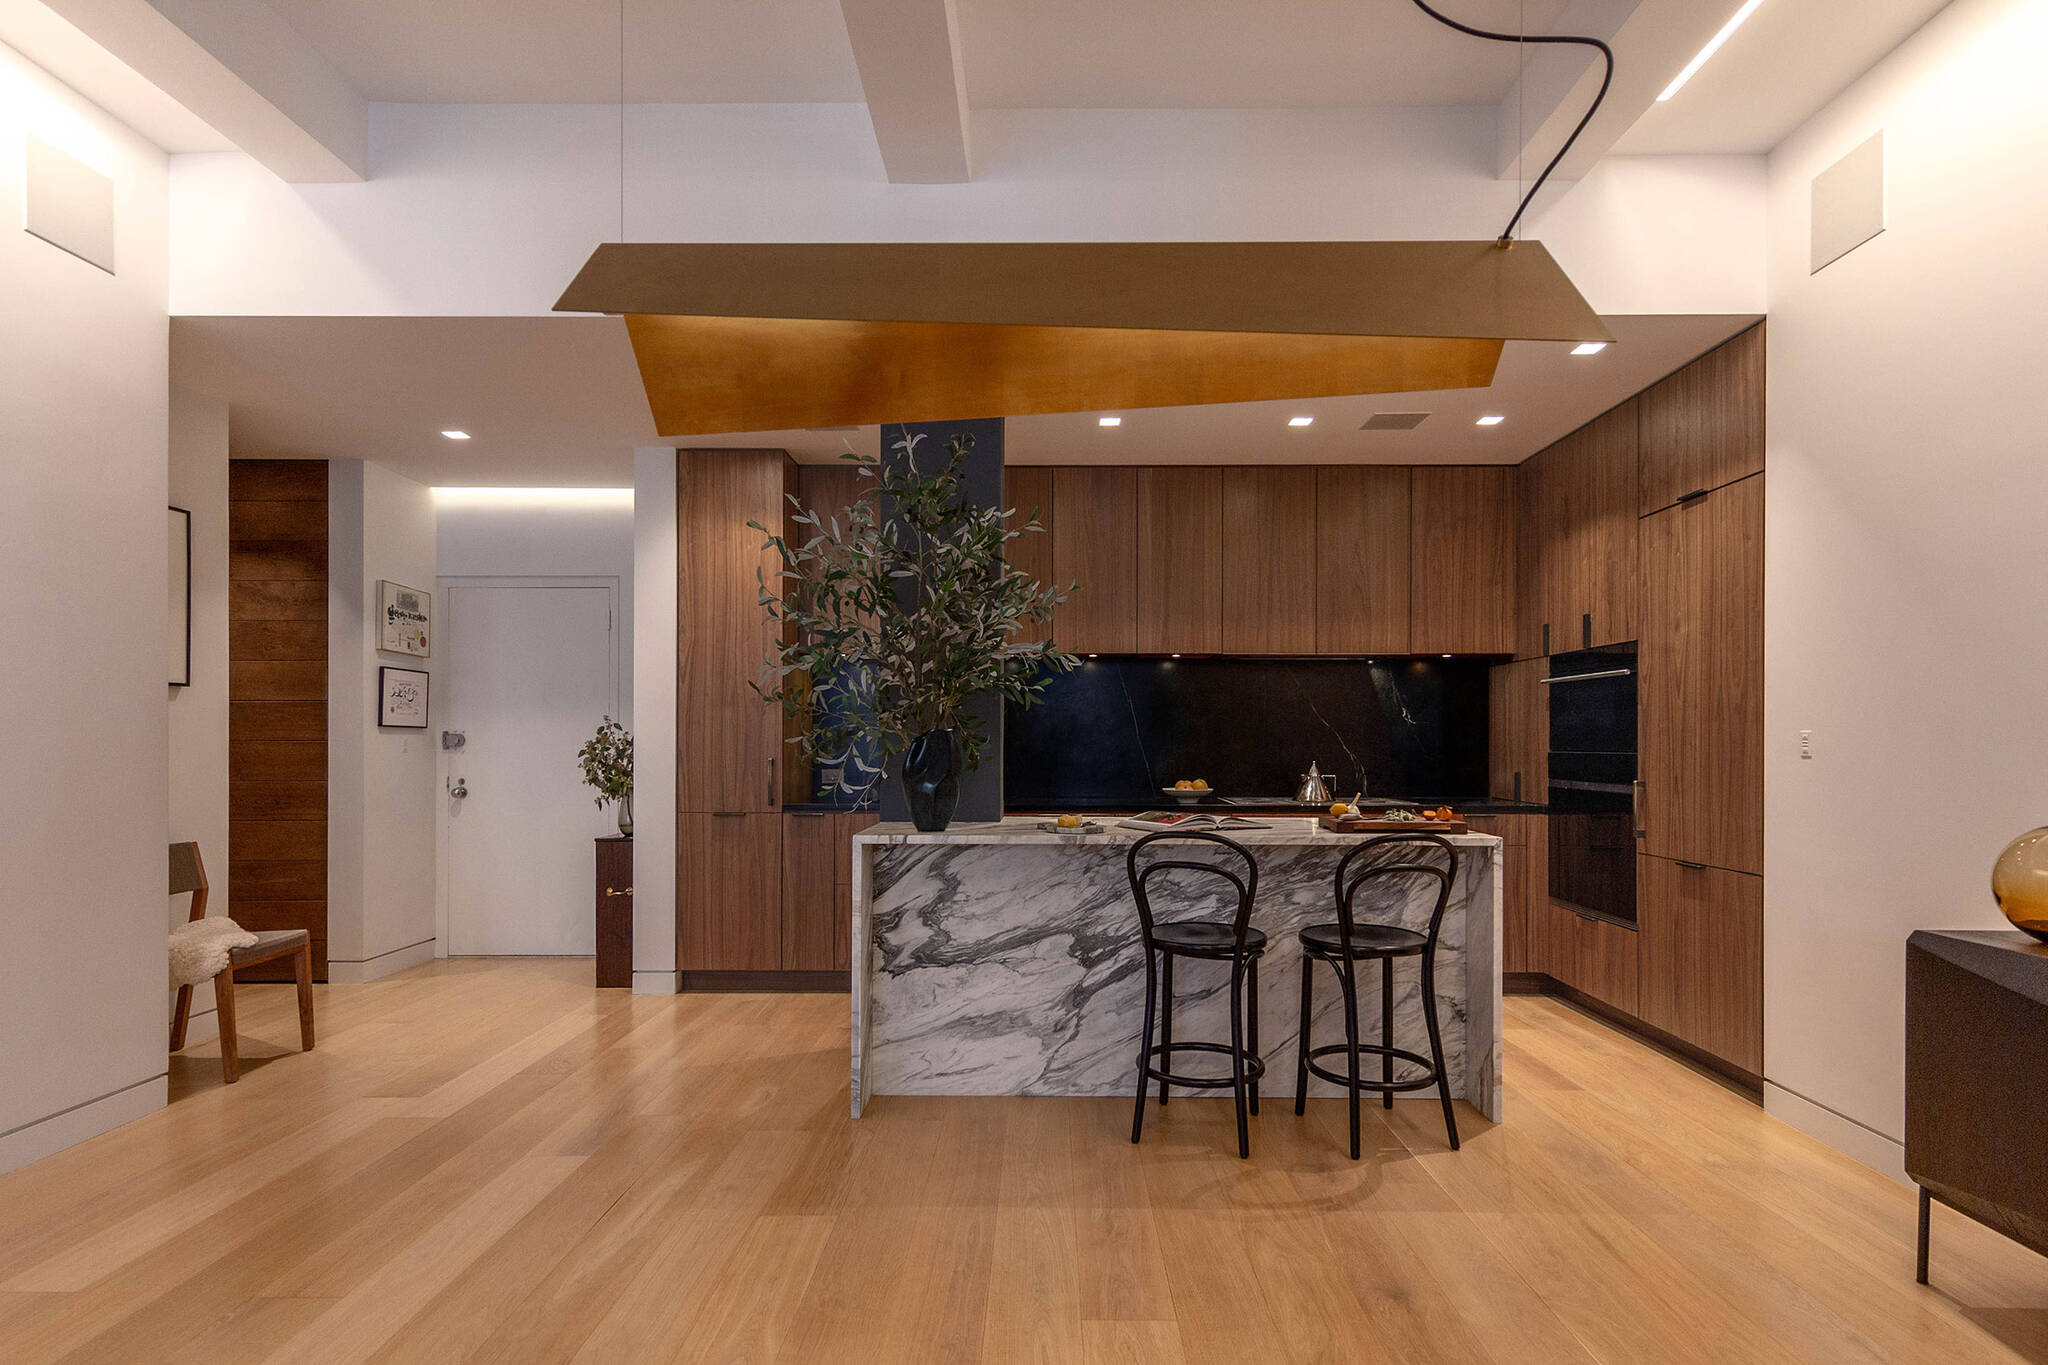 Dining room and open kitchen of the Loft renovation project in Chelsea, New York City designed by the architecture studio Danny Forster & Architecture